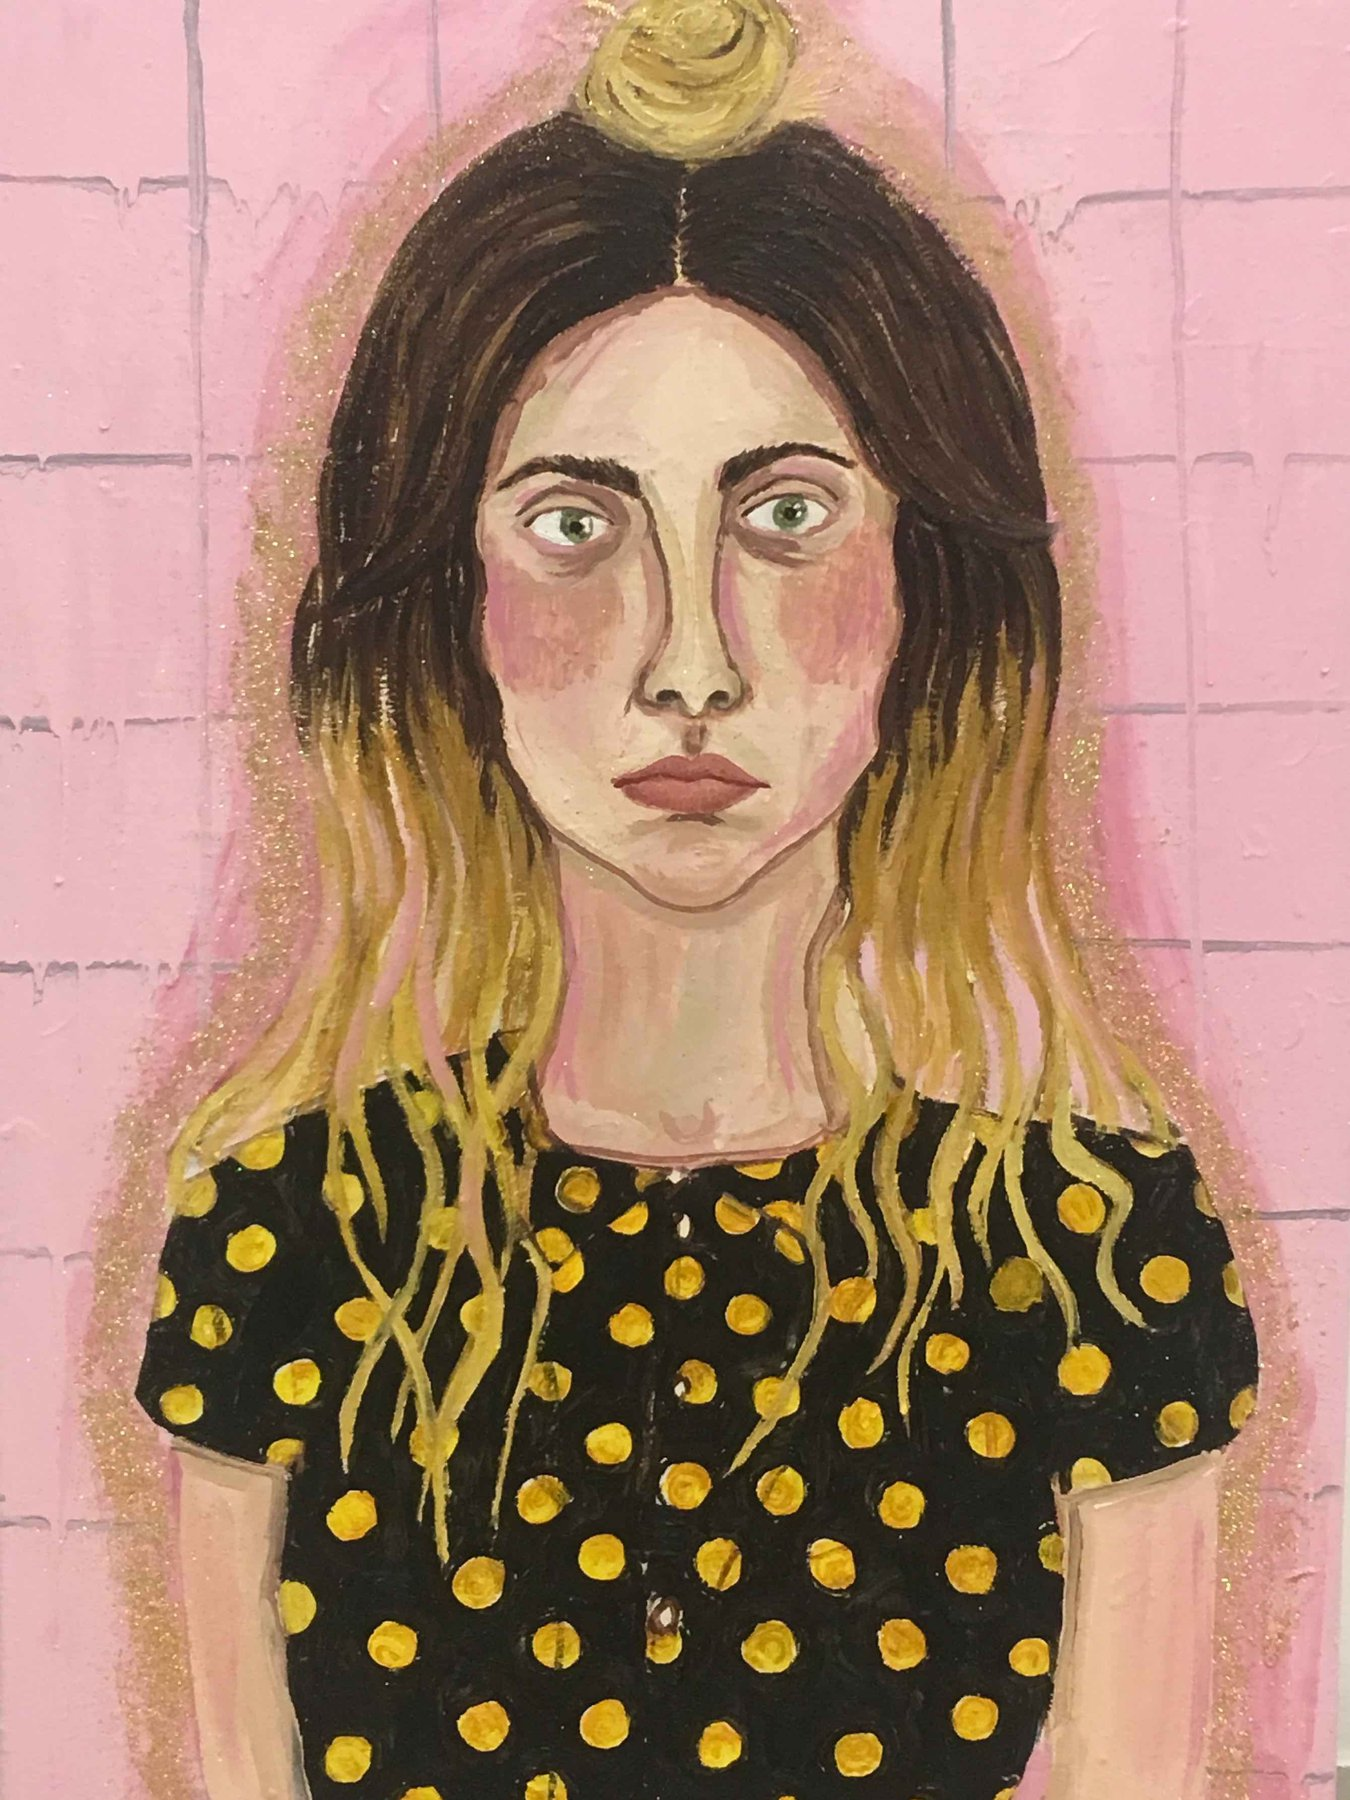 Self portrait in pink